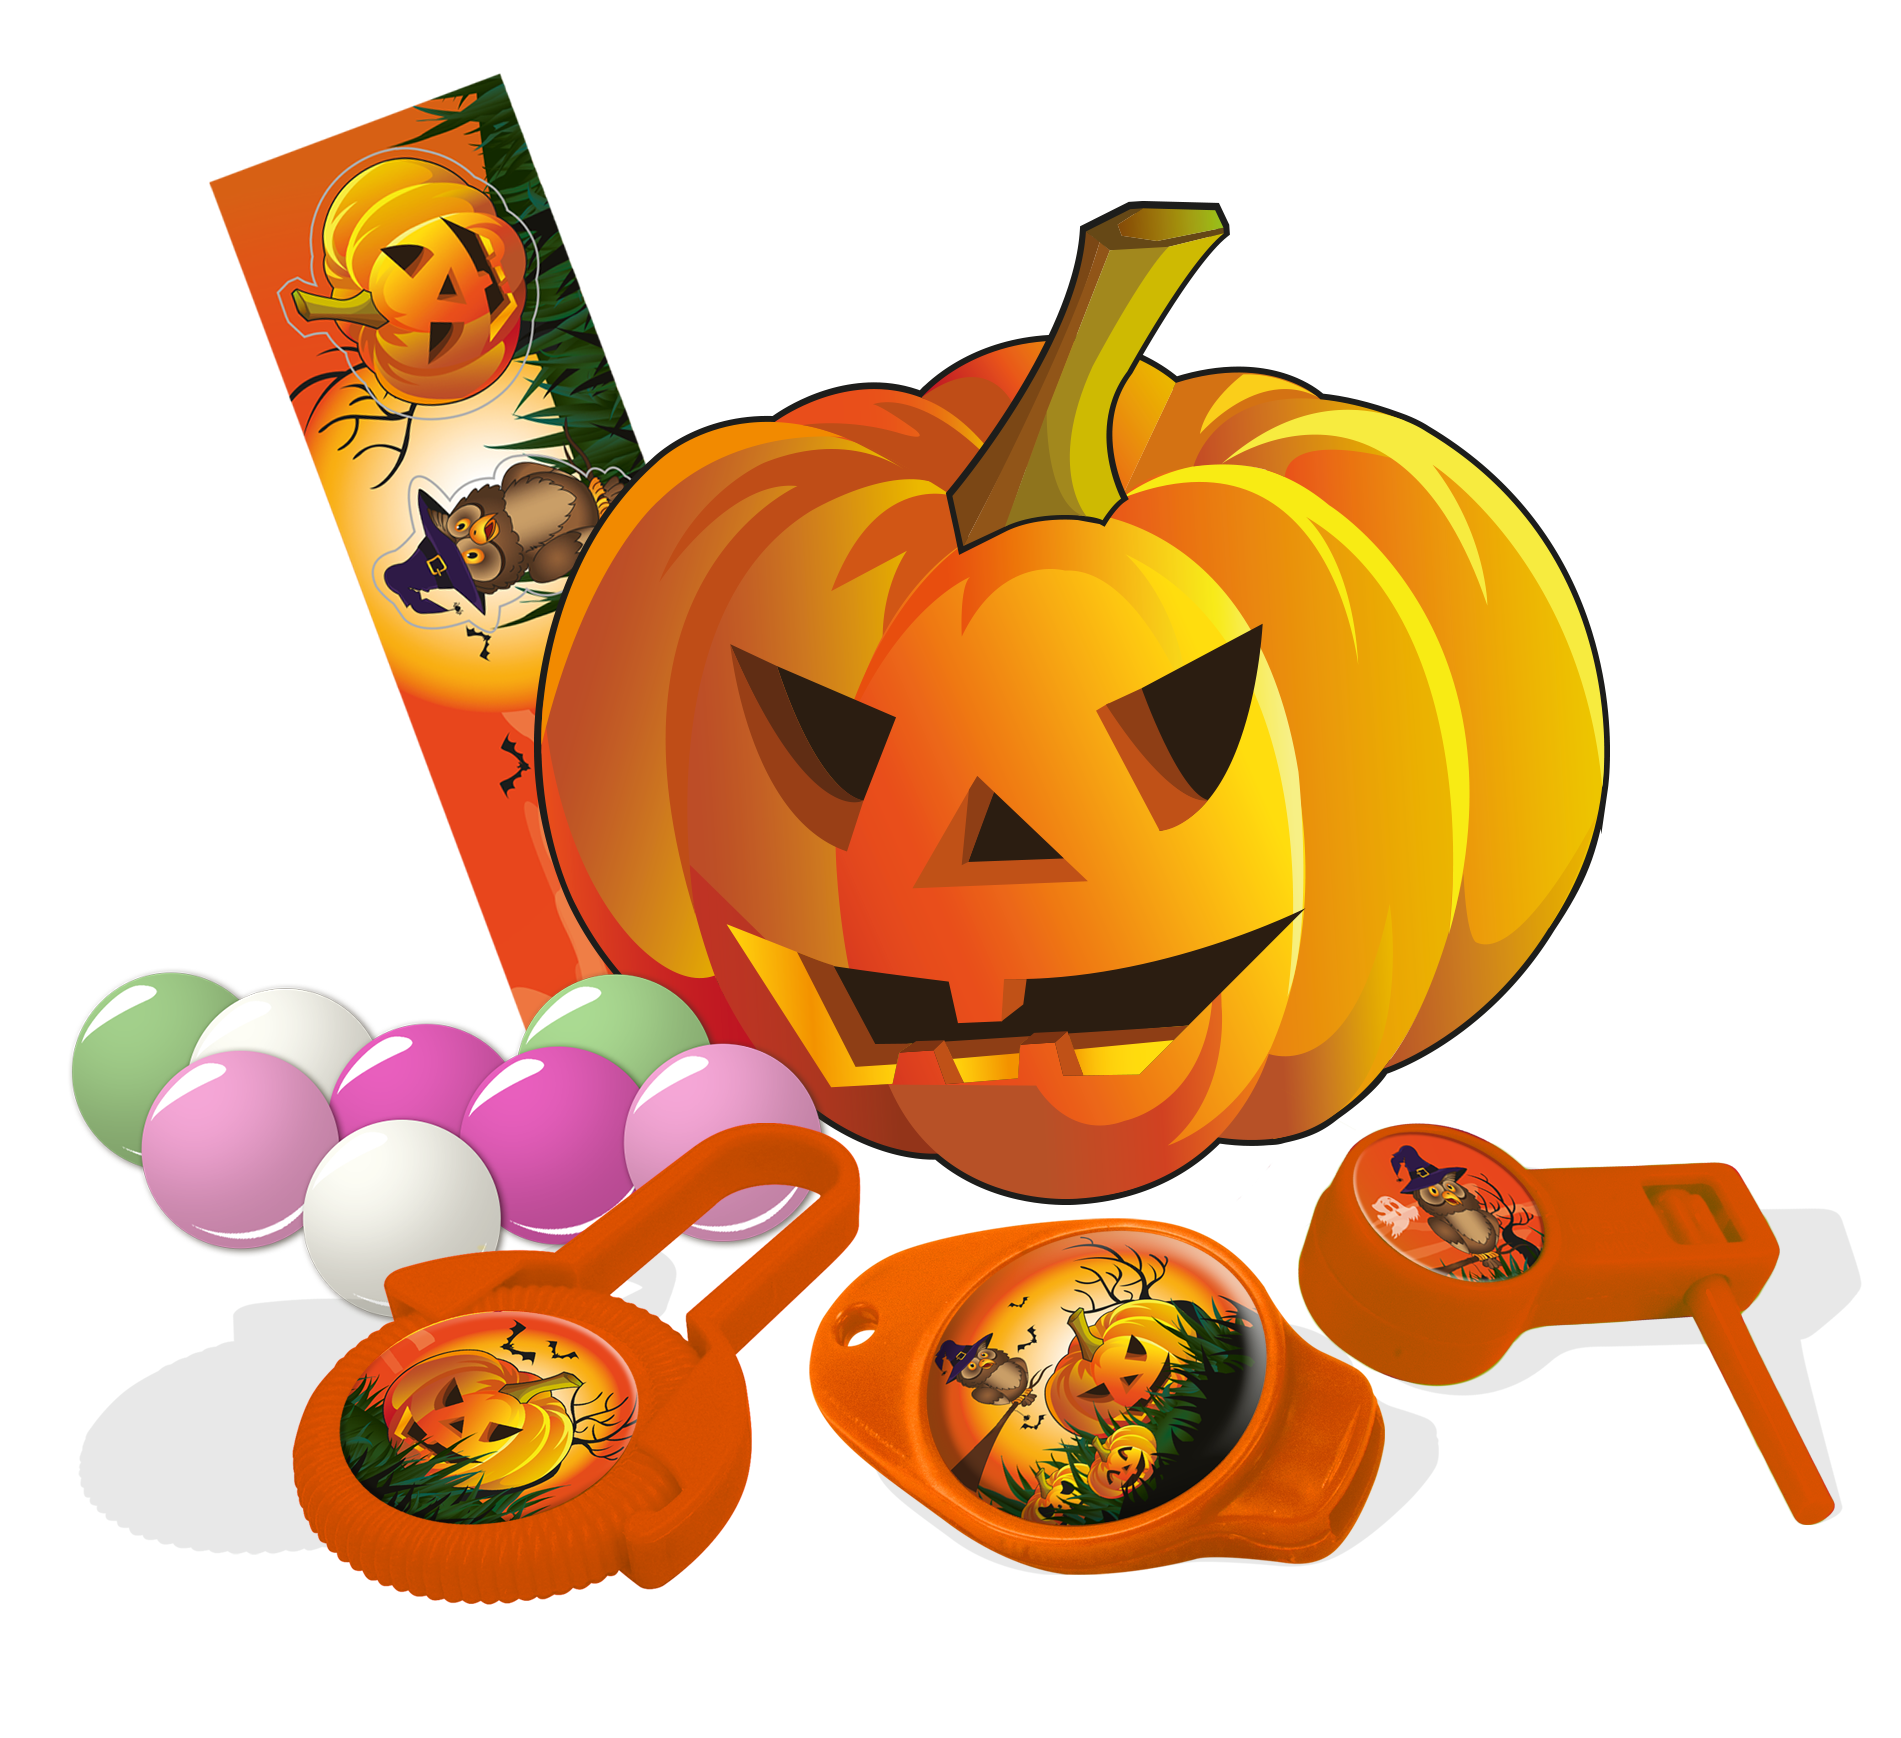 Halloween candy clipart png png black and white download Halloween Candy Pumpkin Piece - BIP Candy & Toy png black and white download